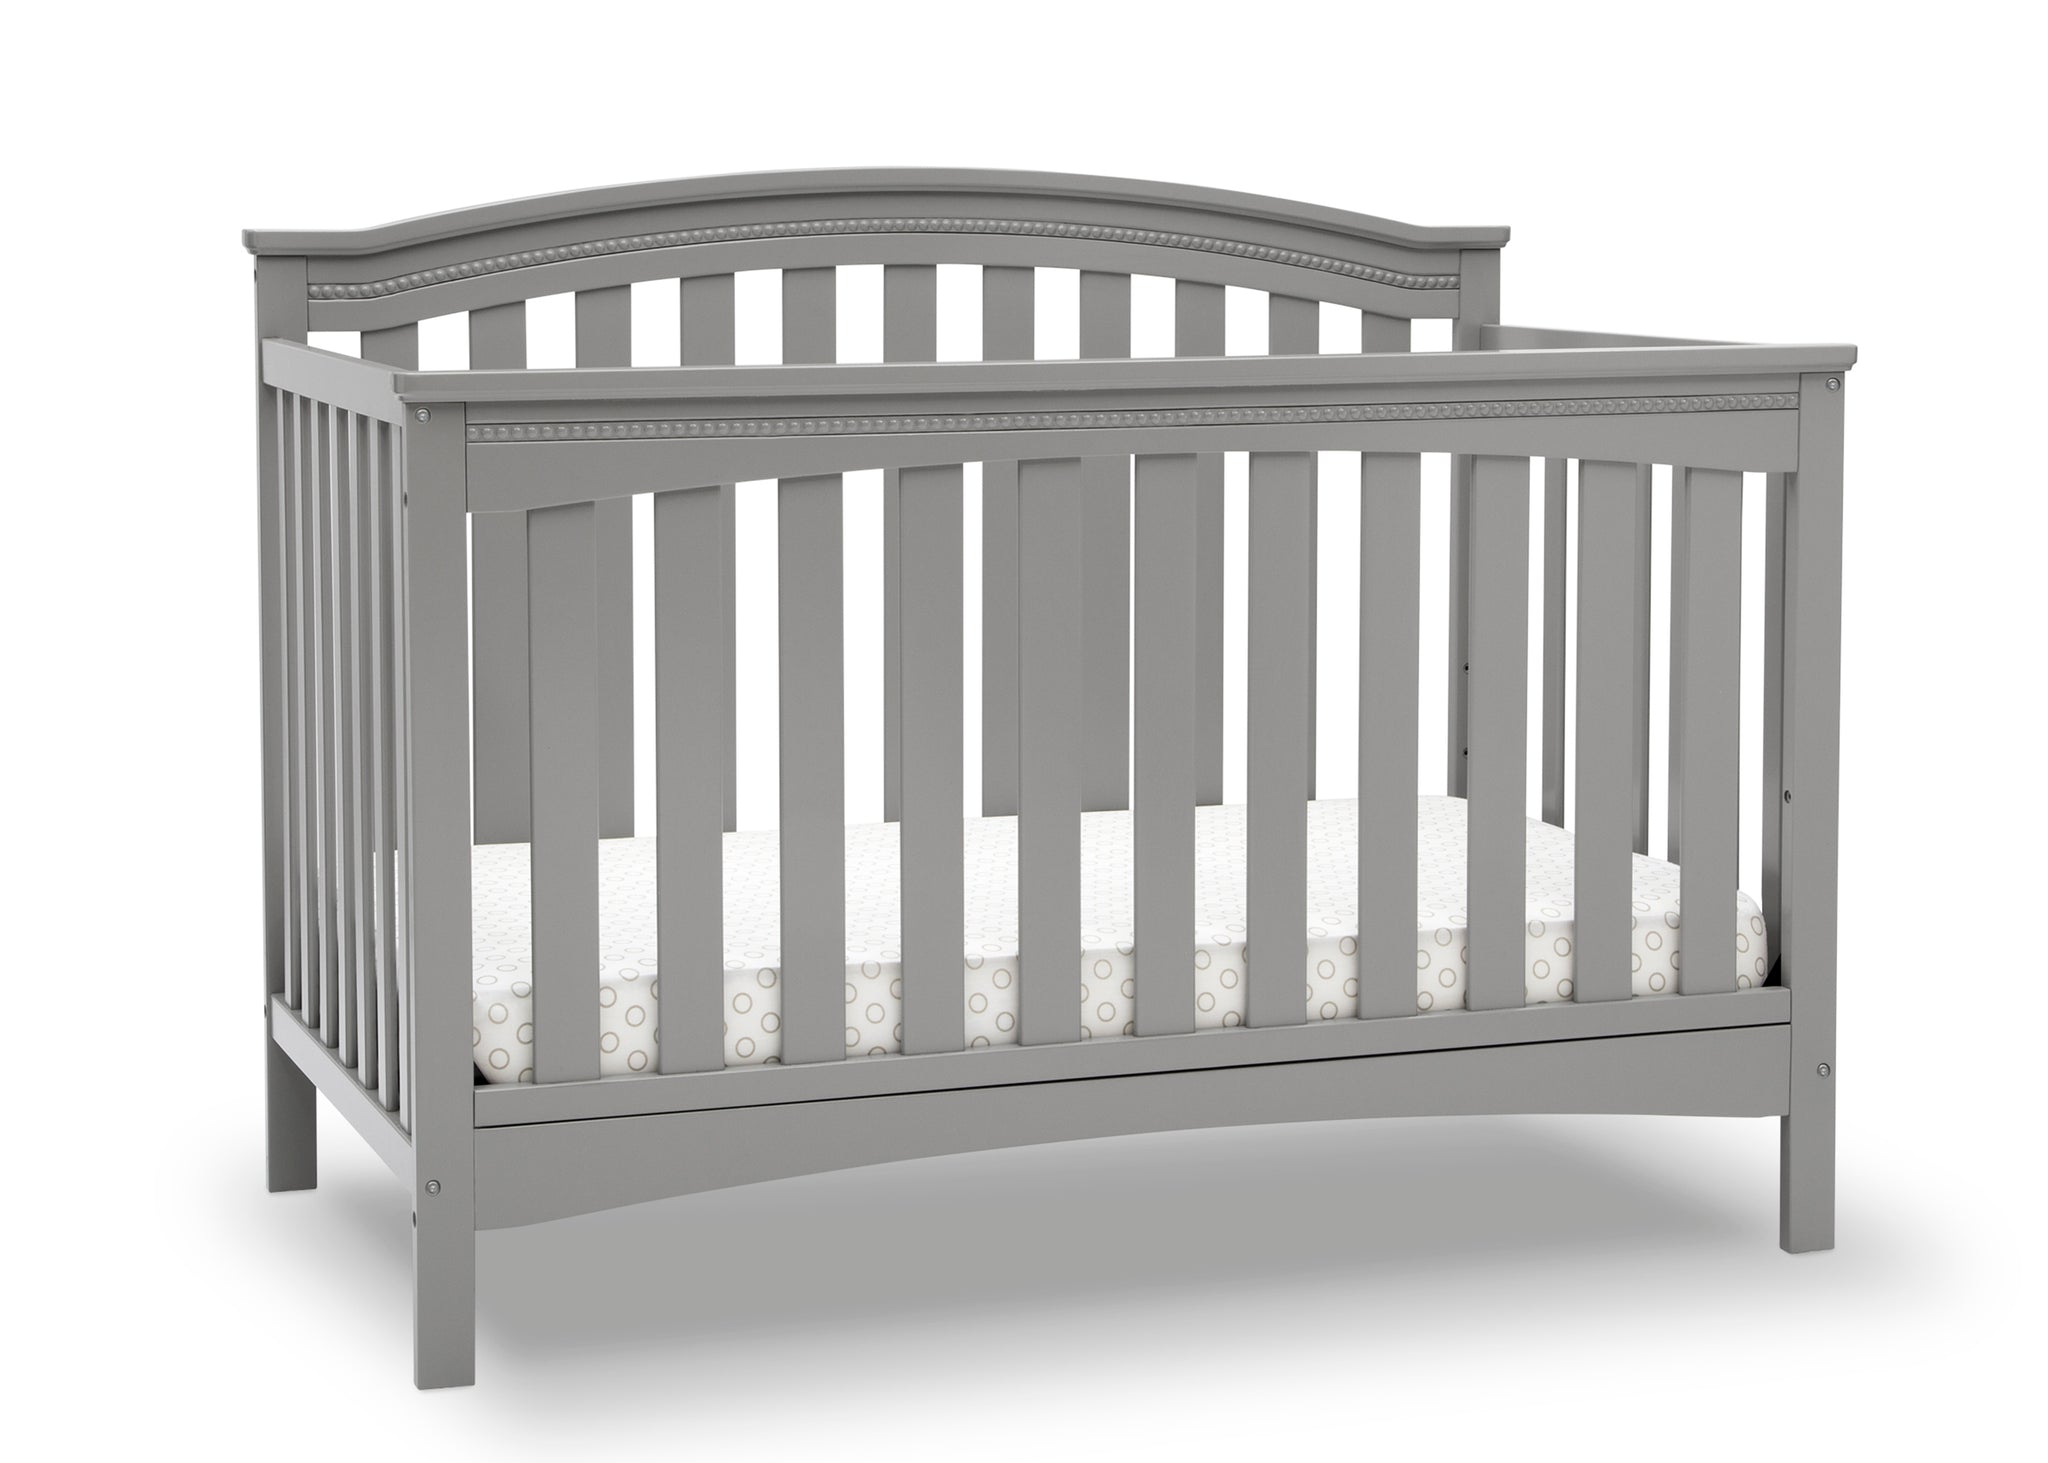 Delta Children Grey (026) Waverly 6-in-1 Convertible Crib, Right Crib Silo View